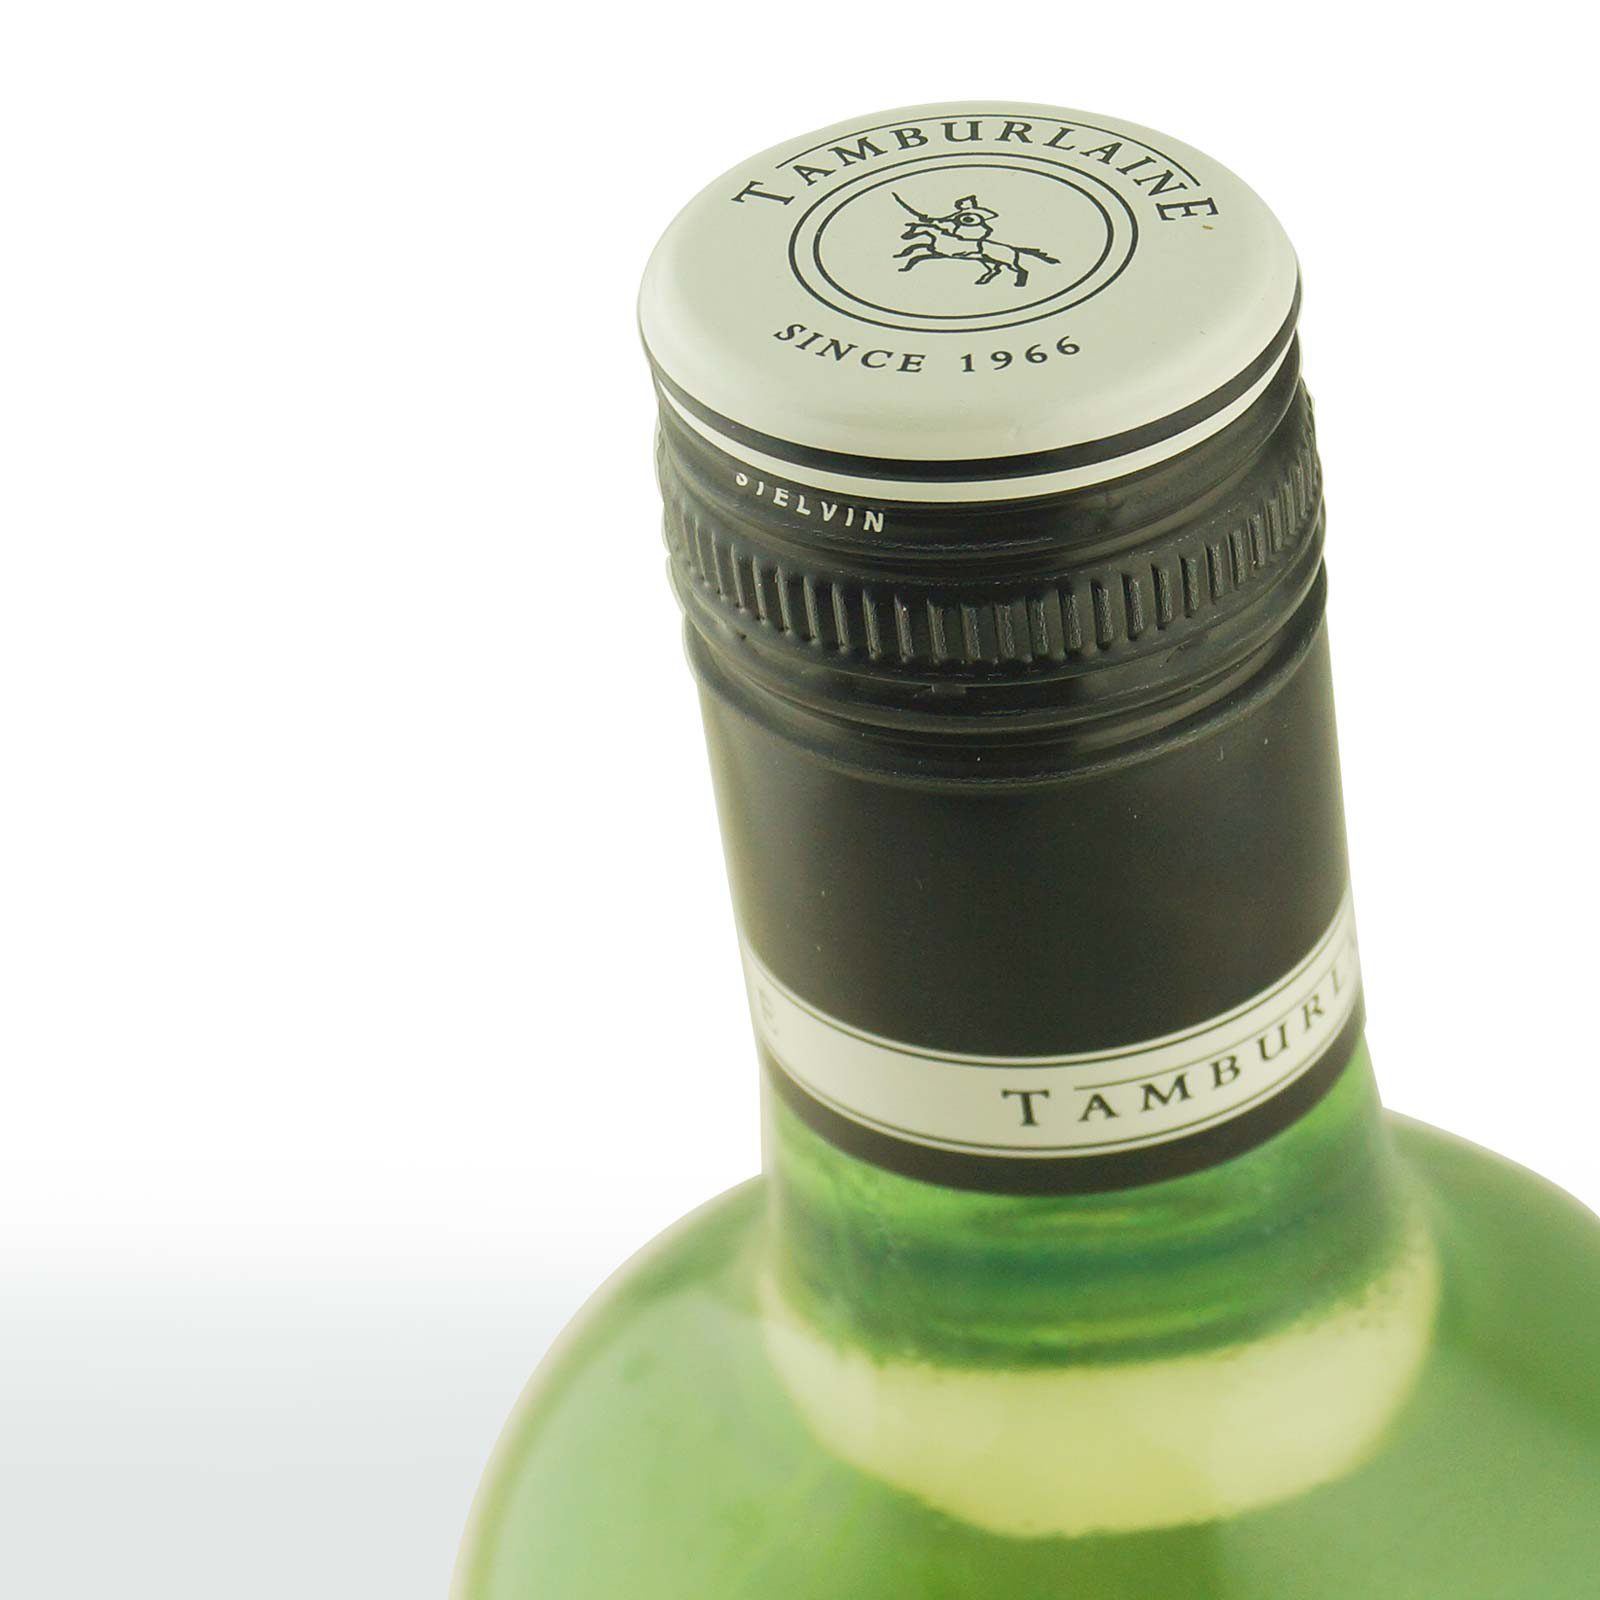 products-tamburlaine-sauvigon-blanc-semillon-b